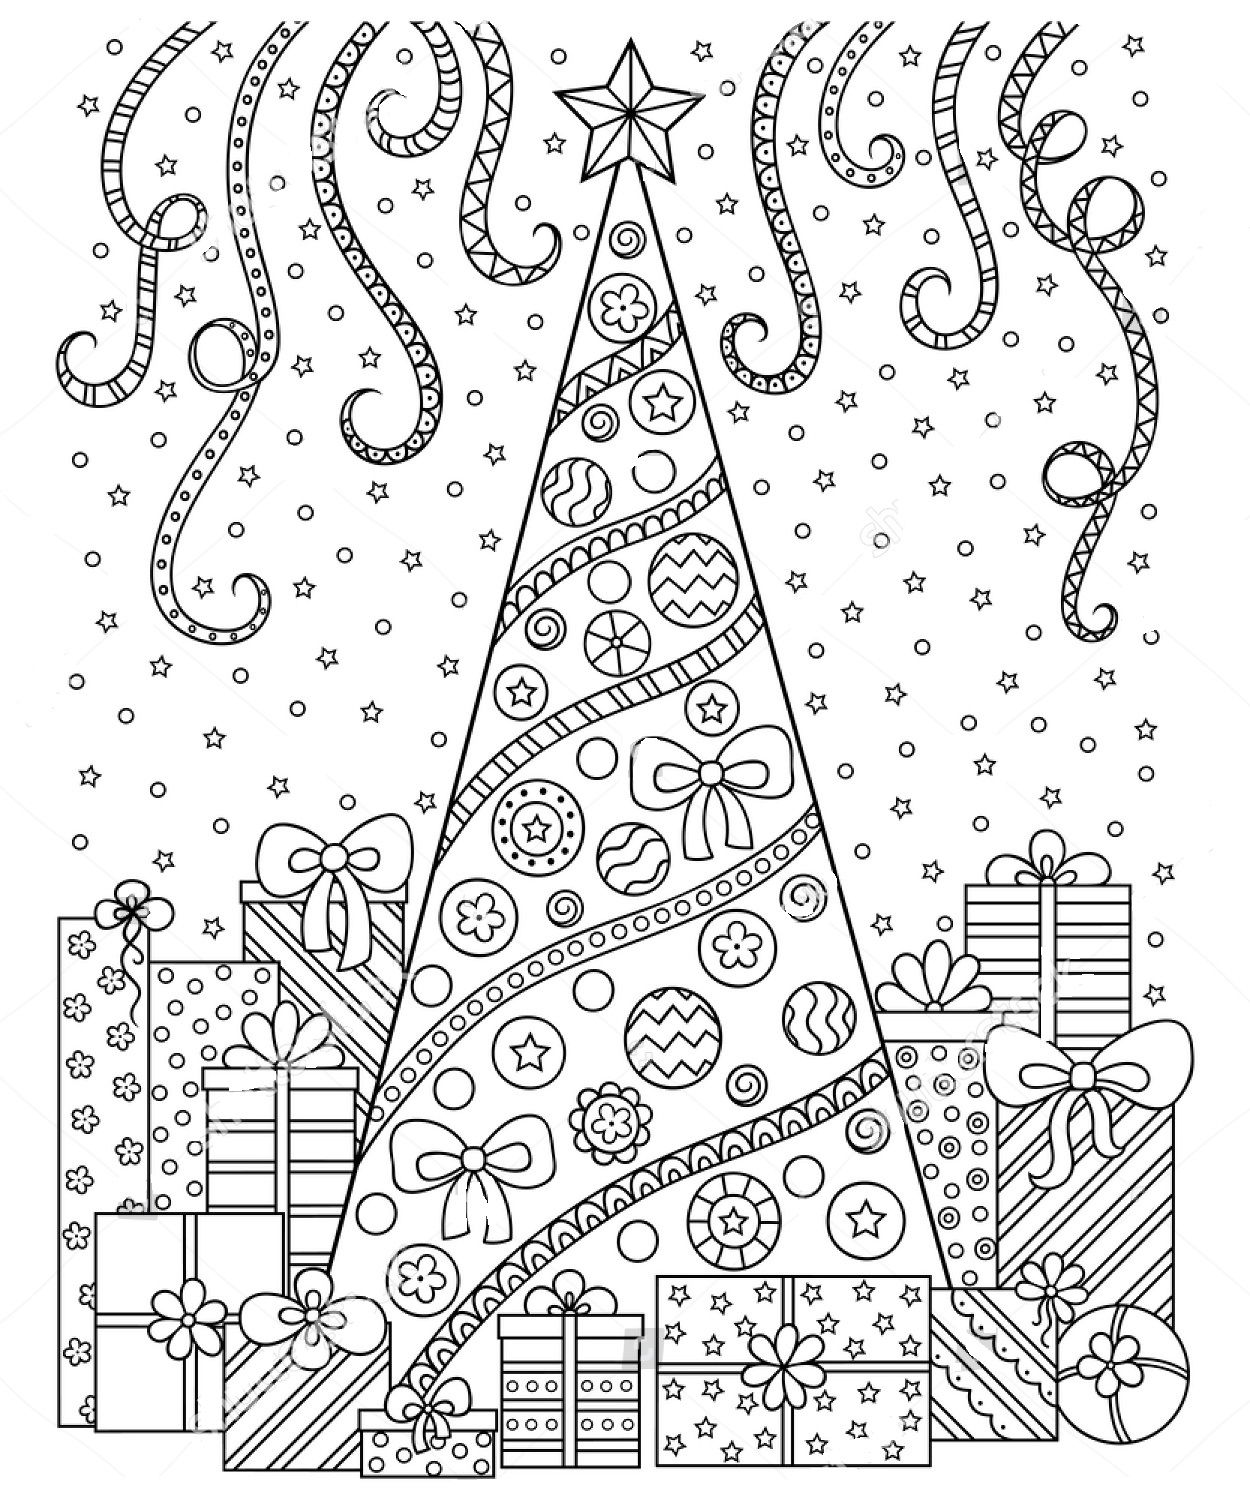 Colorful Jokes Coloring Page